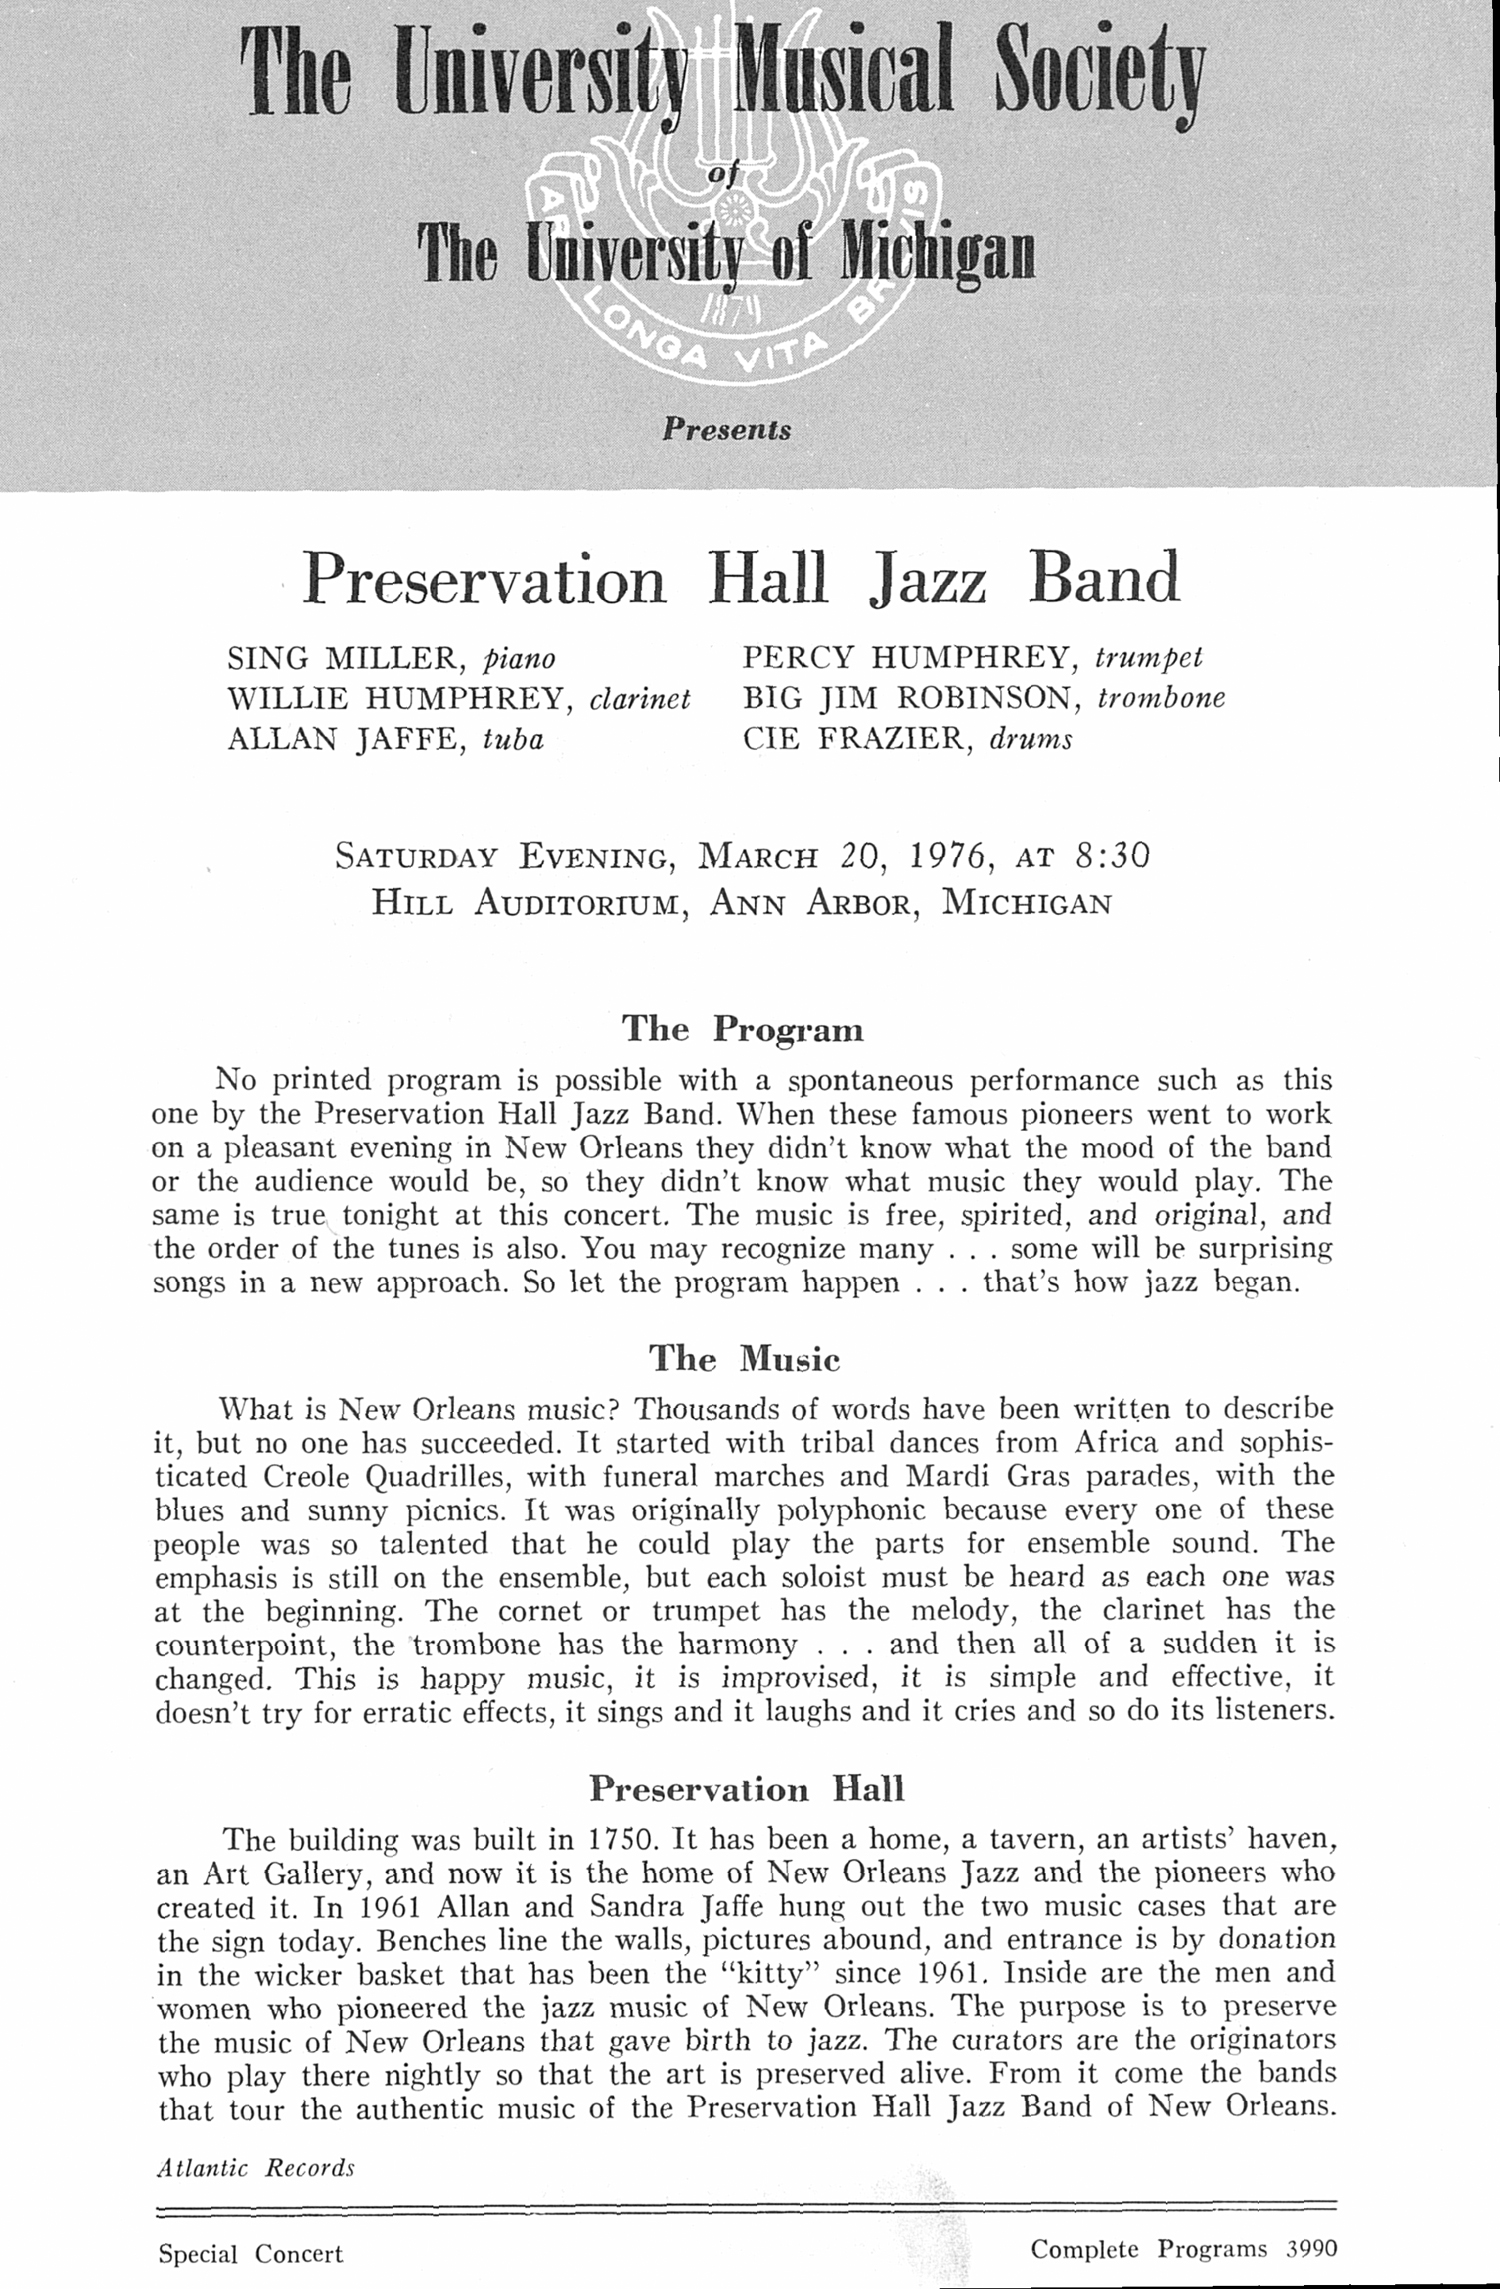 UMS Concert Program, March 20, 1976: Preservation Hall Jazz Band --  image